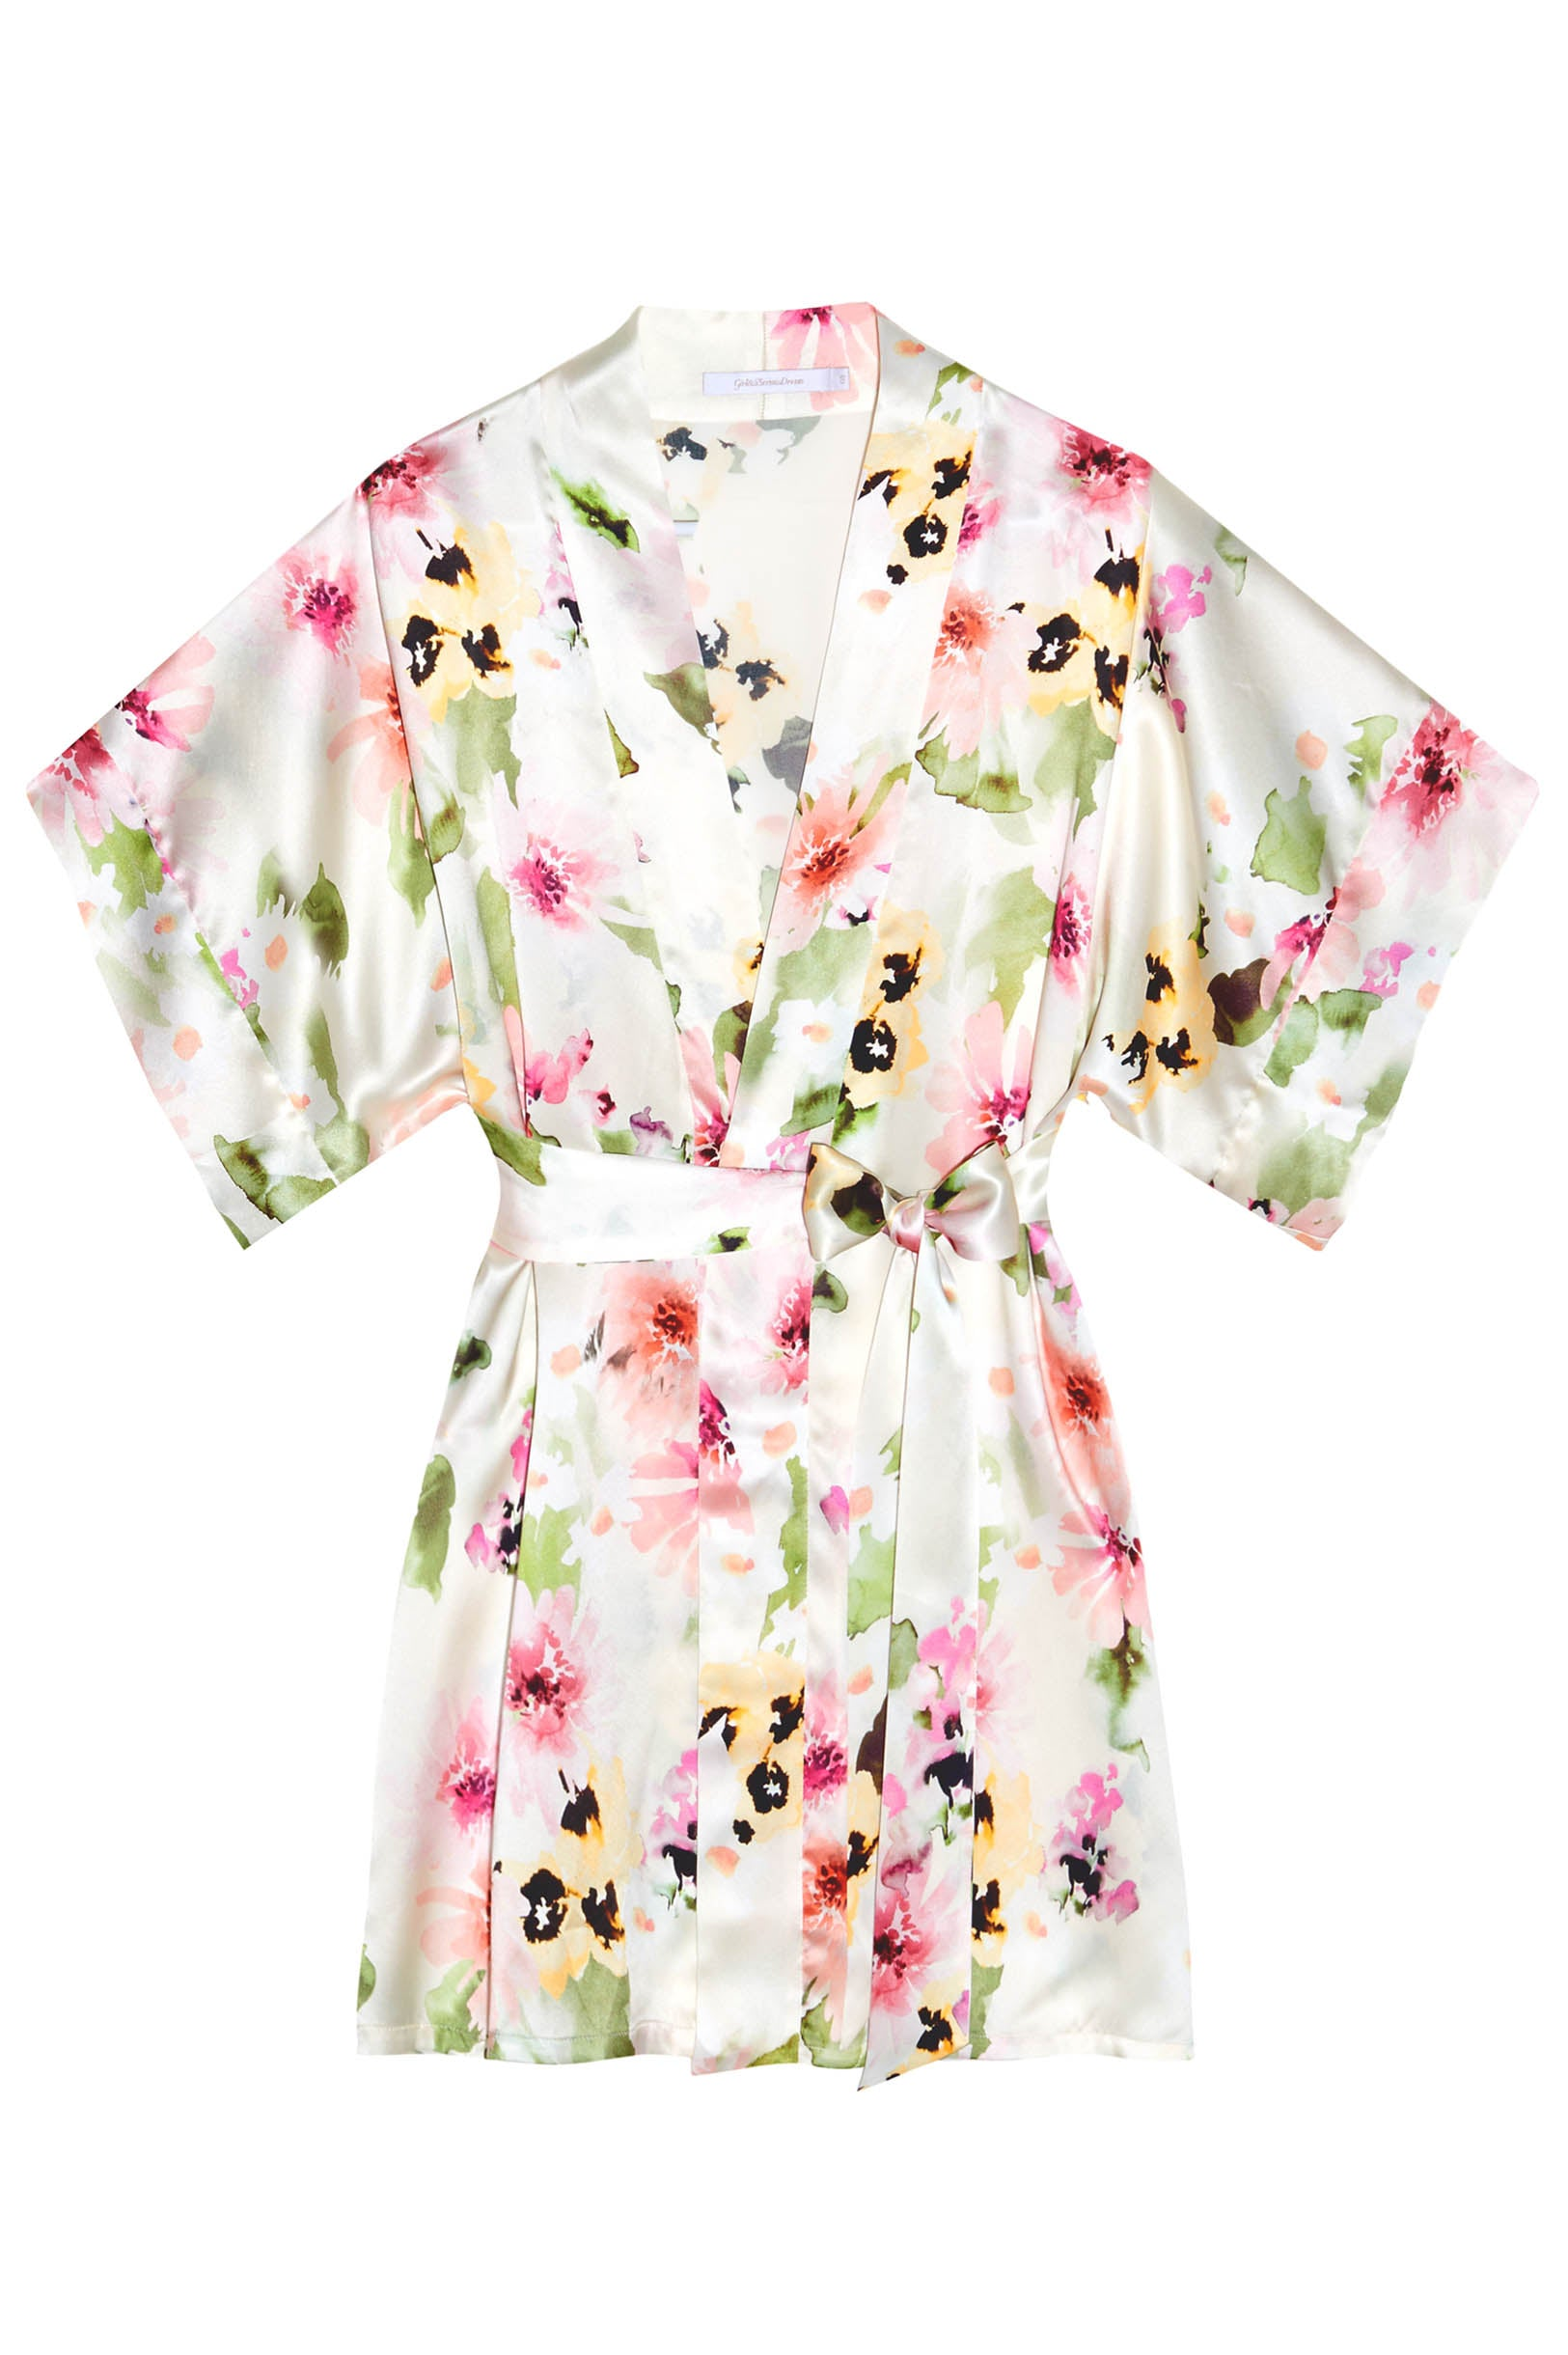 Samantha Silk Kimono Robe in Watercolor Dreams floral print